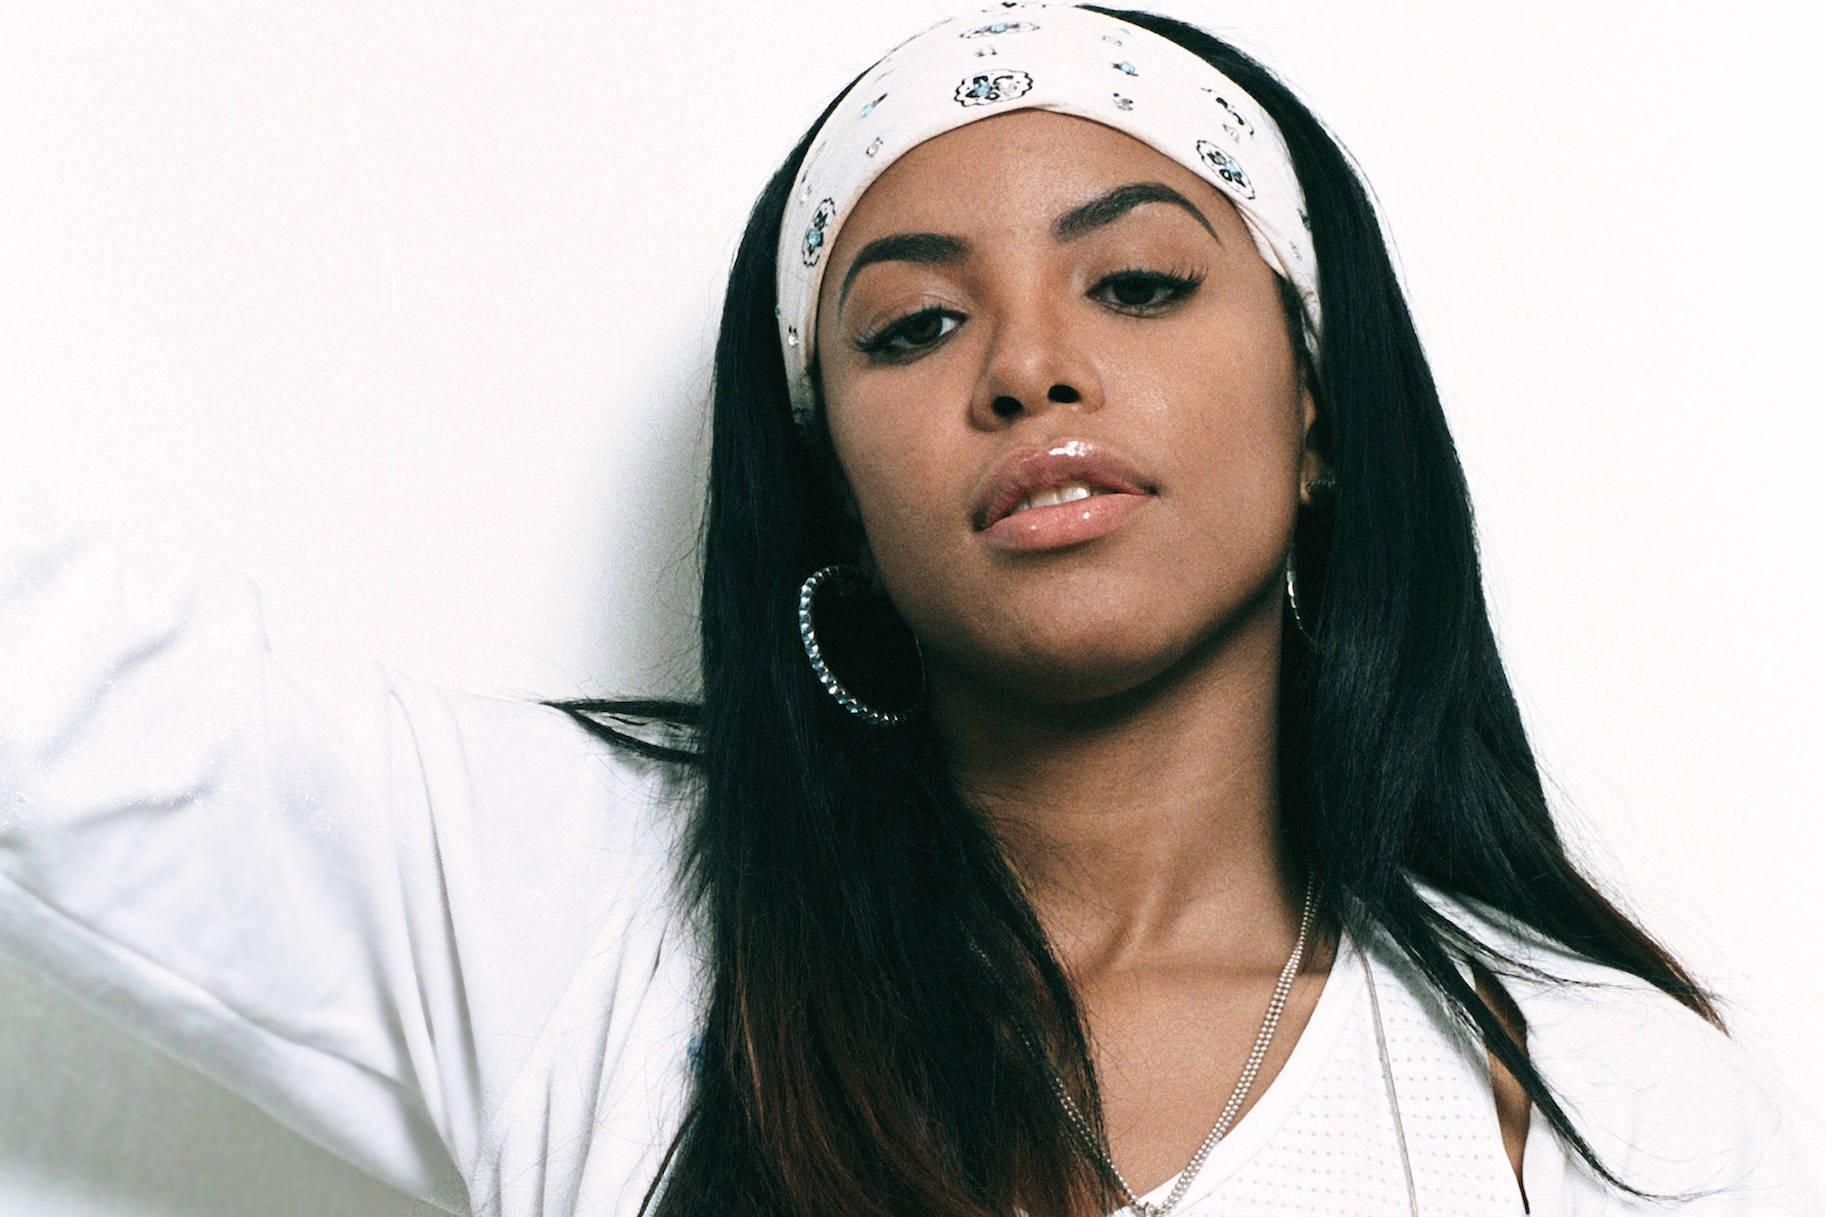 Facebook Wallpaper Hd Girl 6 Style Lessons We Learned From Aaliyah Very Real